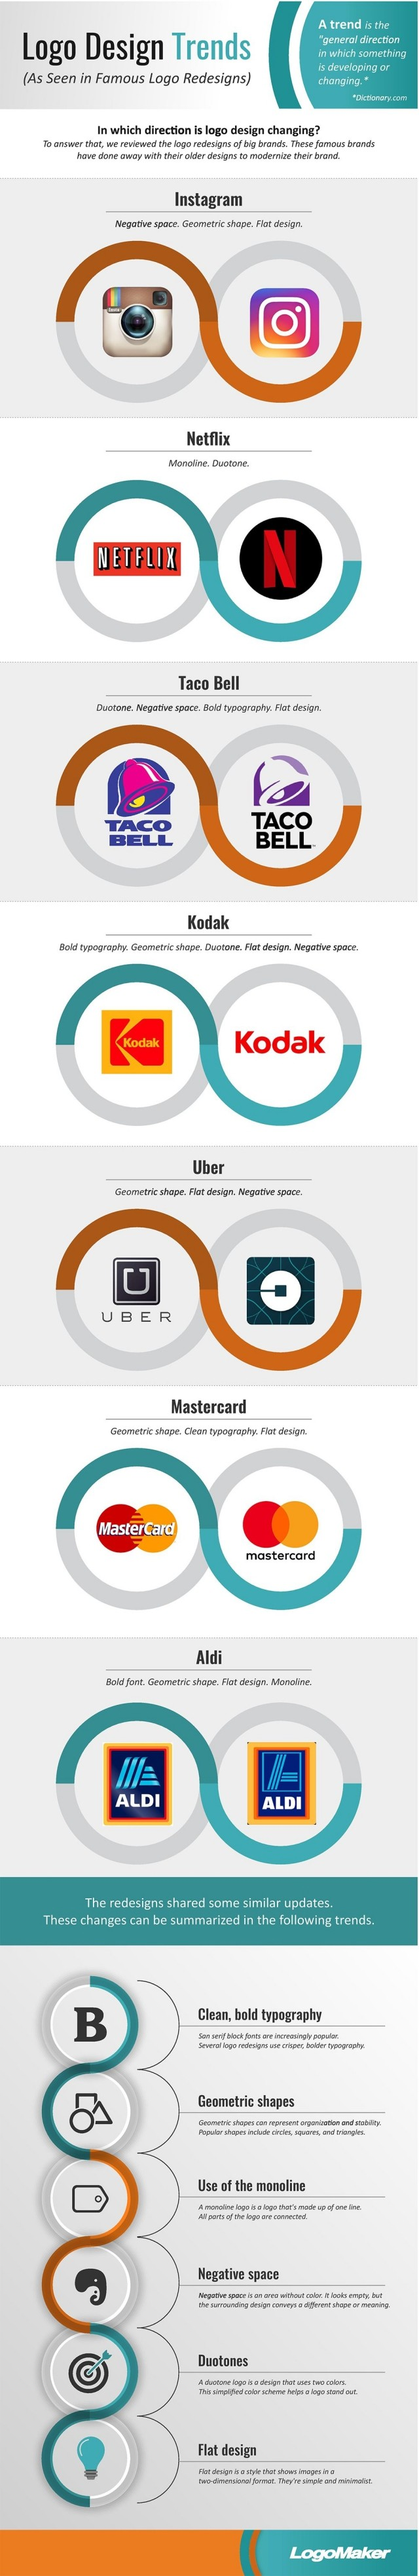 Famous Logo Redesigns' infographic